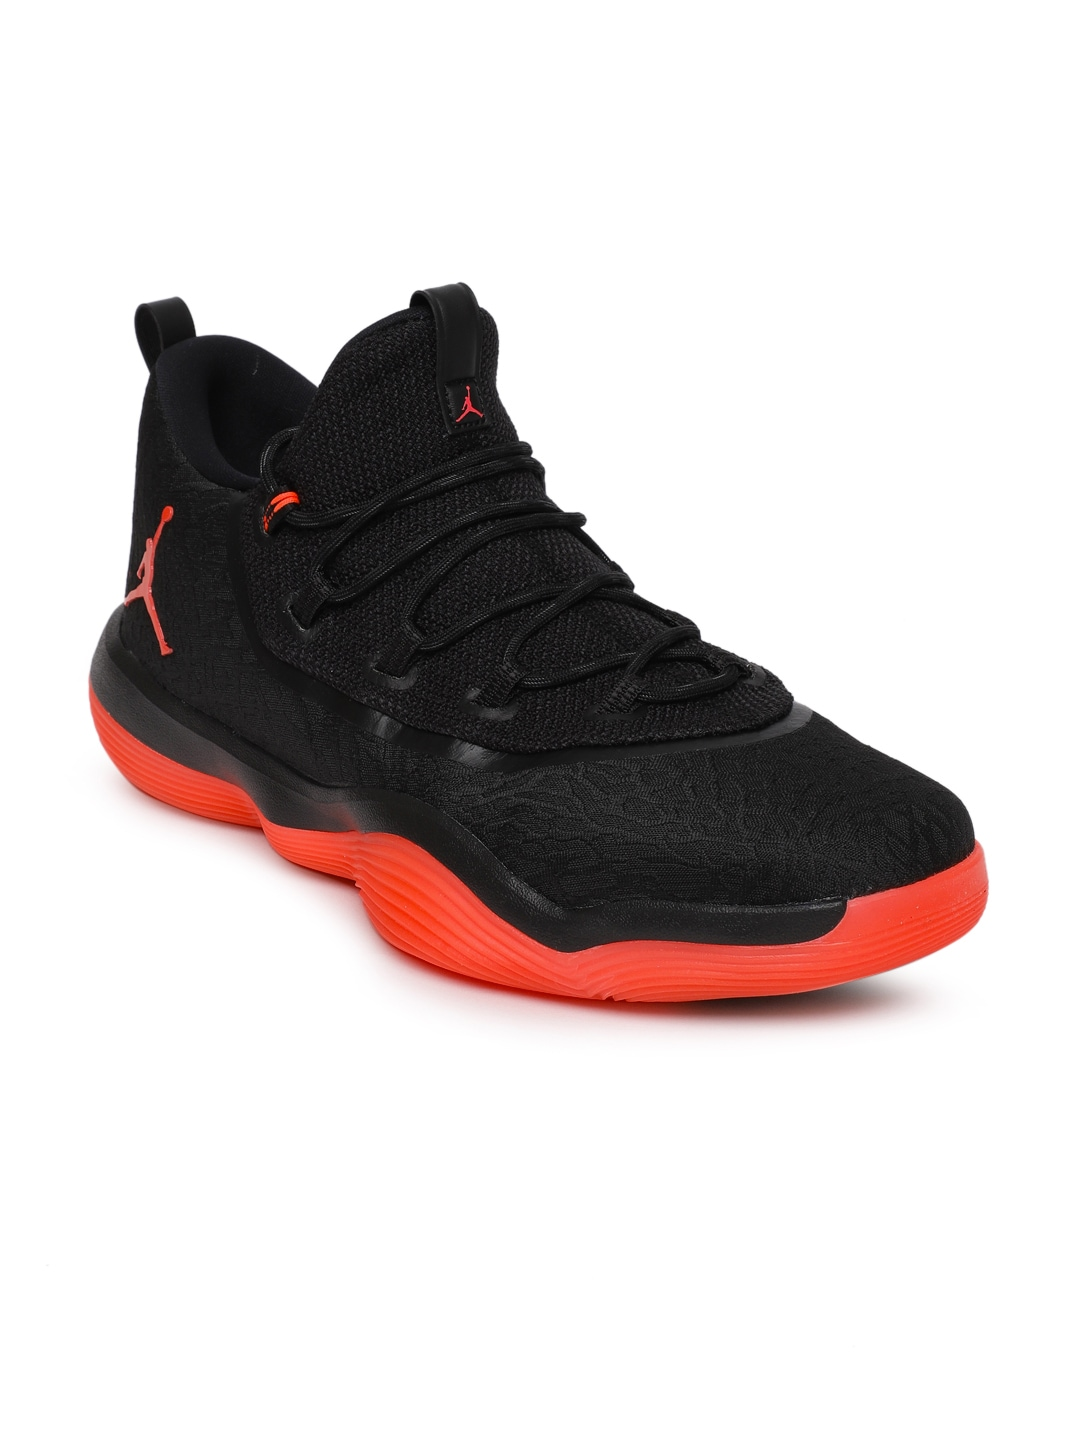 a7b31ffd2a024 Jordan Shoes - Buy Jordan Shoes For Men Online in India